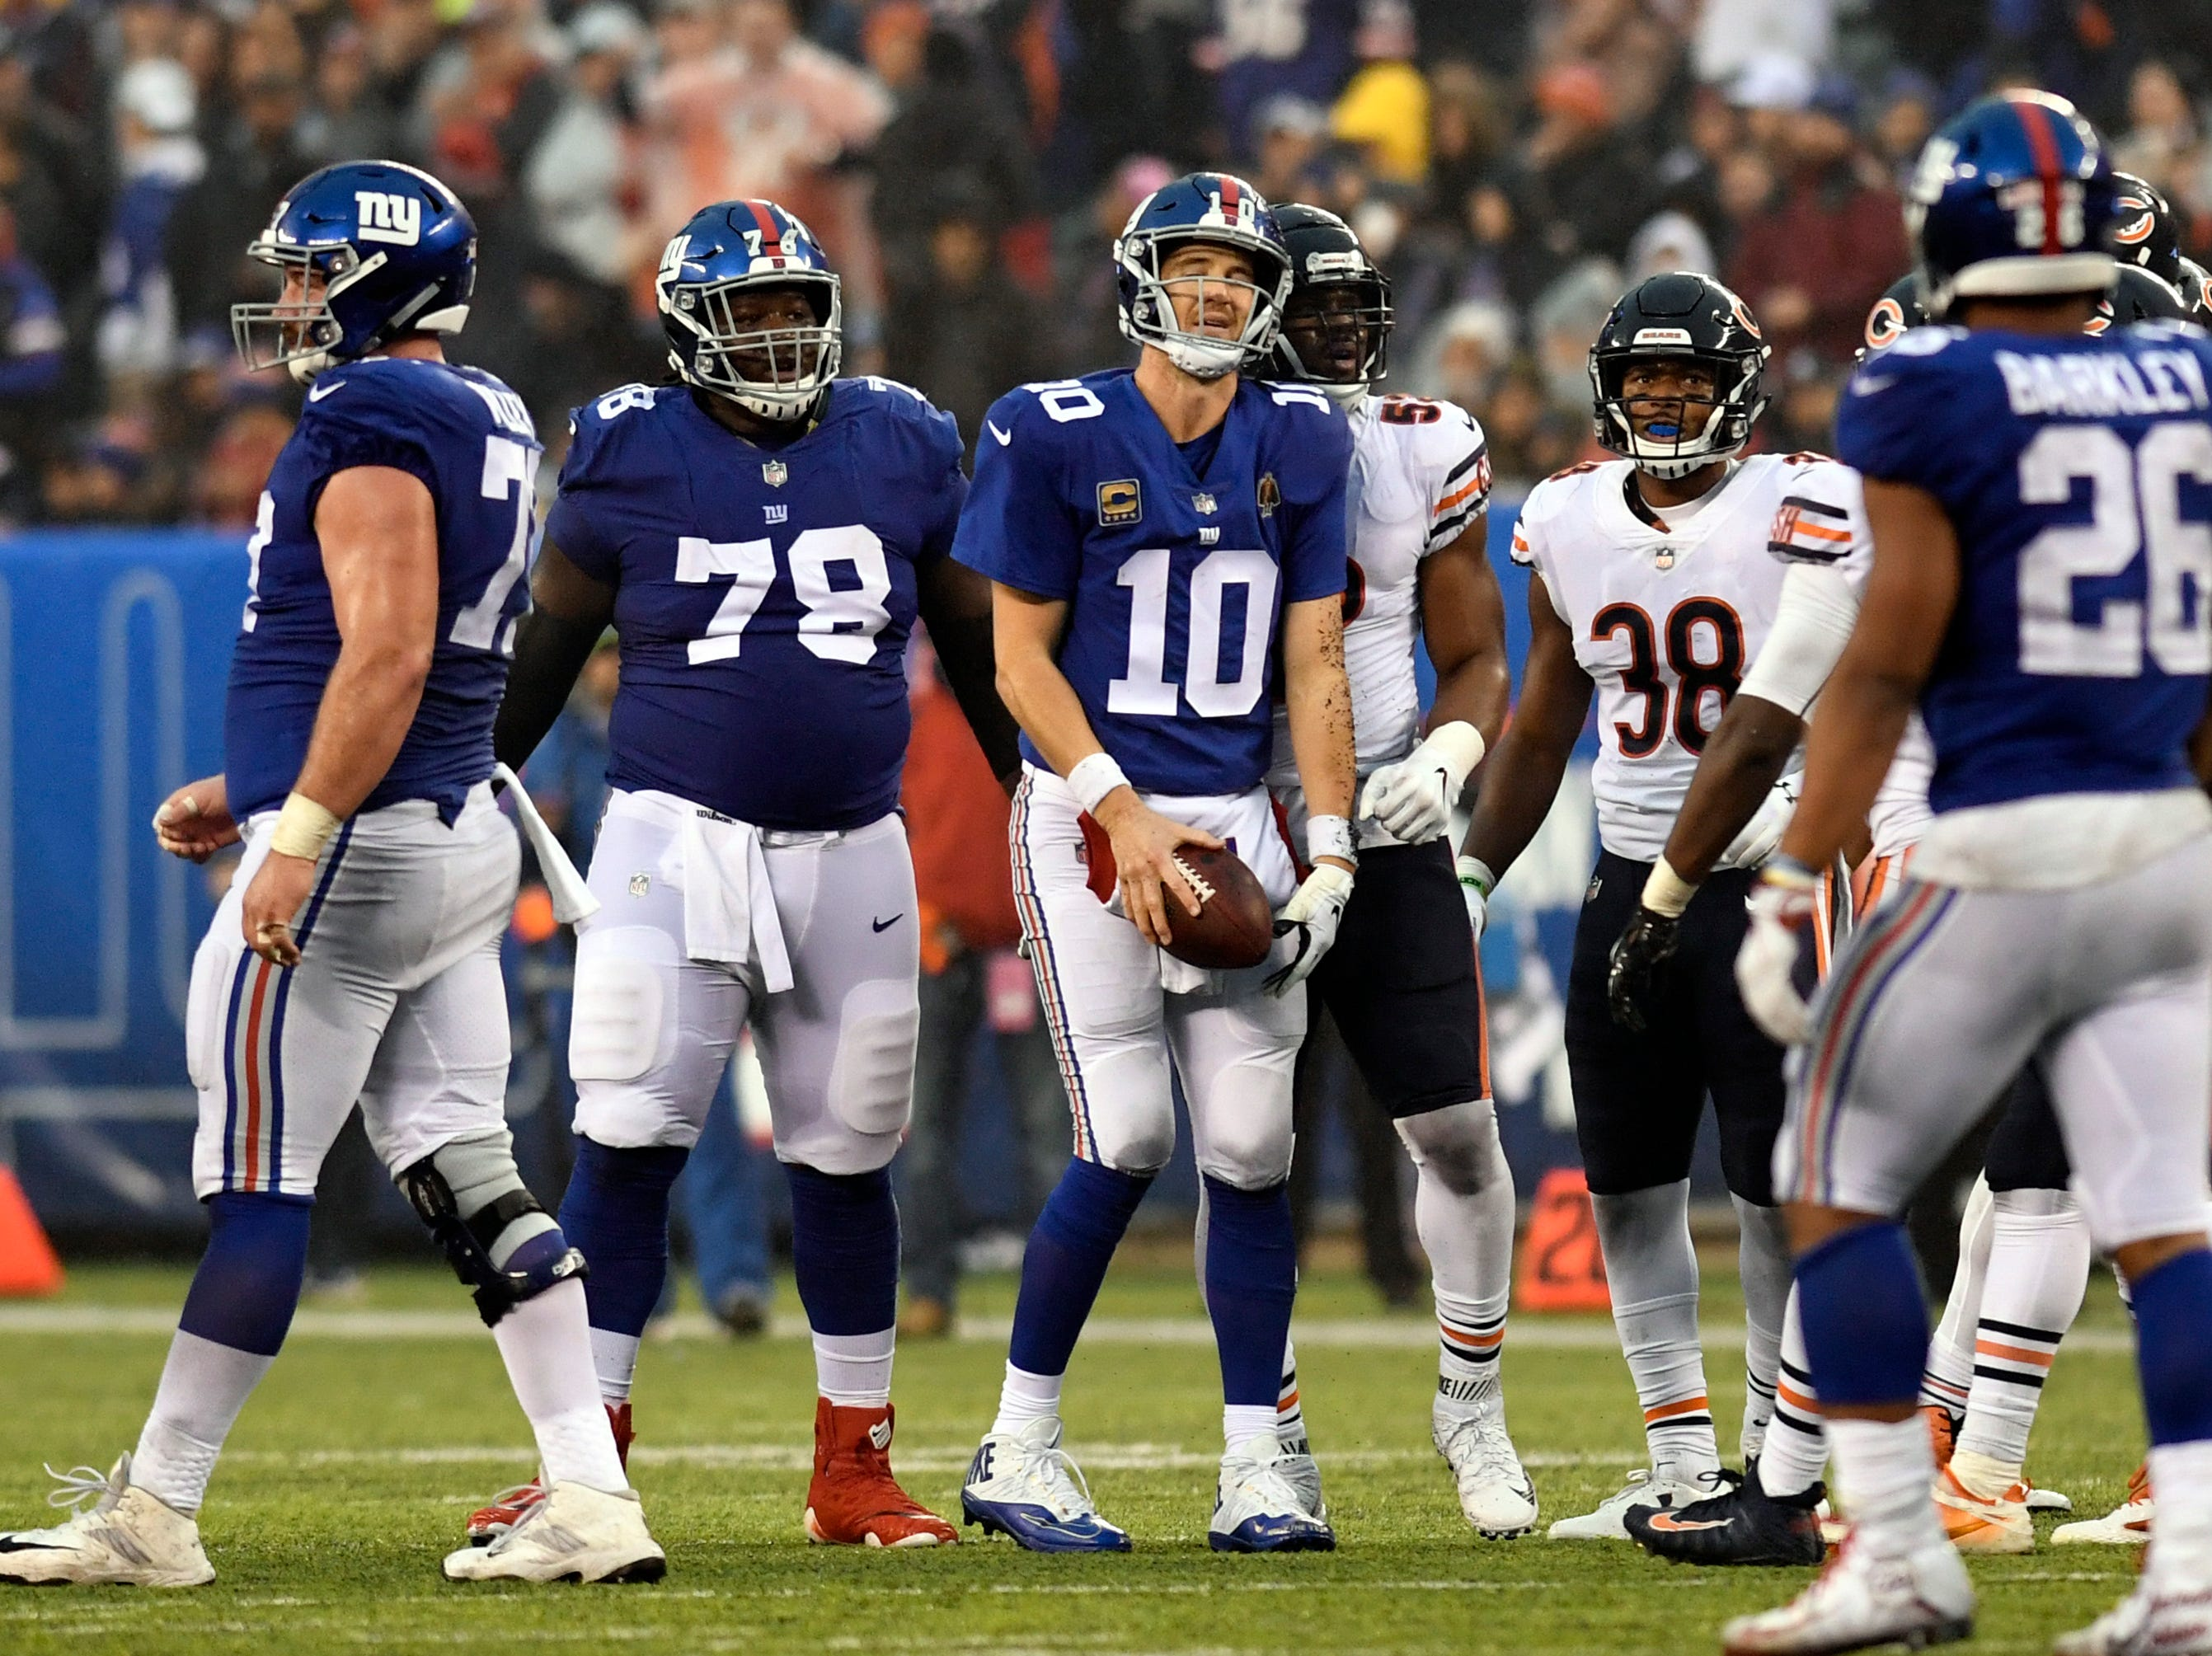 New York Giants quarterback Eli Manning (10) reacts after being sacked in the second half. The New York Giants defeat the Chicago Bears in overtime 30-27 on Sunday, Dec. 2, 2018, in East Rutherford.